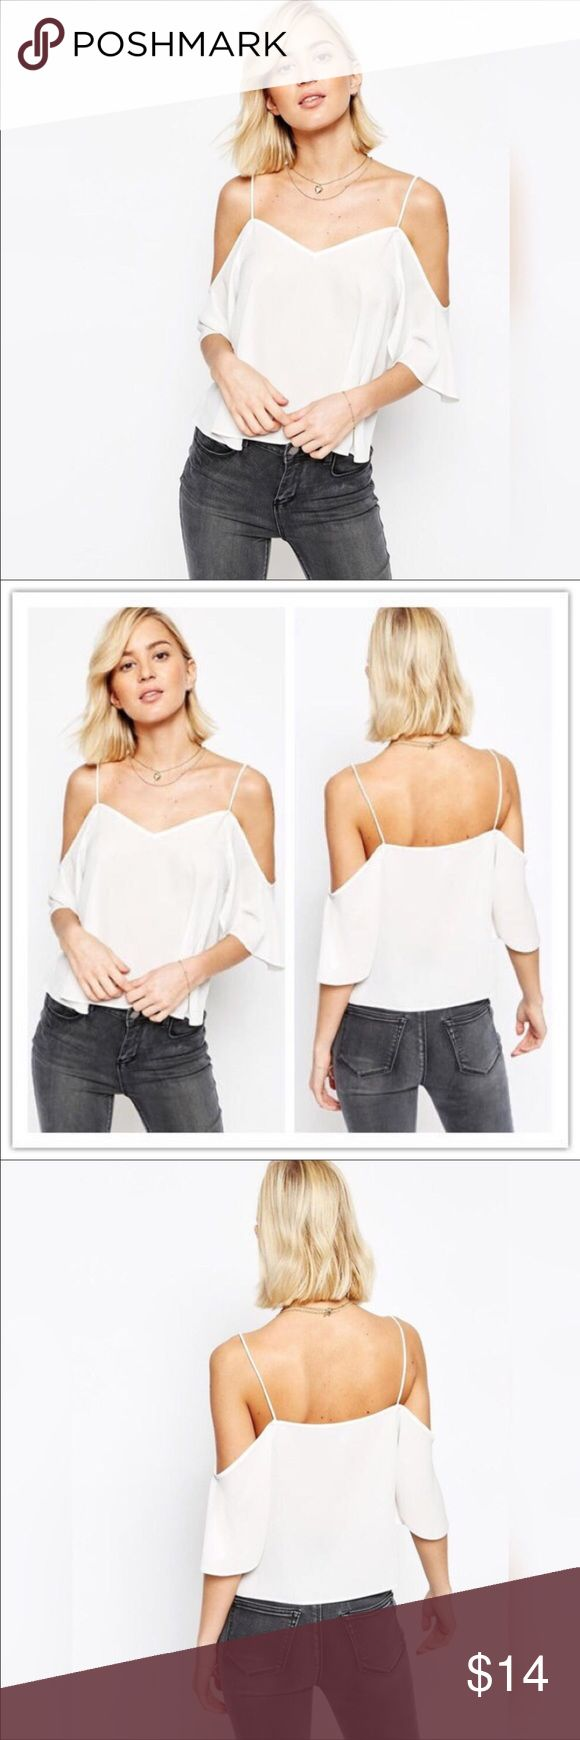 🎉🎊Off shoulder Chiffon Blouse bestseller❤️ Off shoulder chiffon blouse is a best seller in my closet color: cream/dirty white size medium perfect for the summer look sexy and stylish fashion Tops Blouses